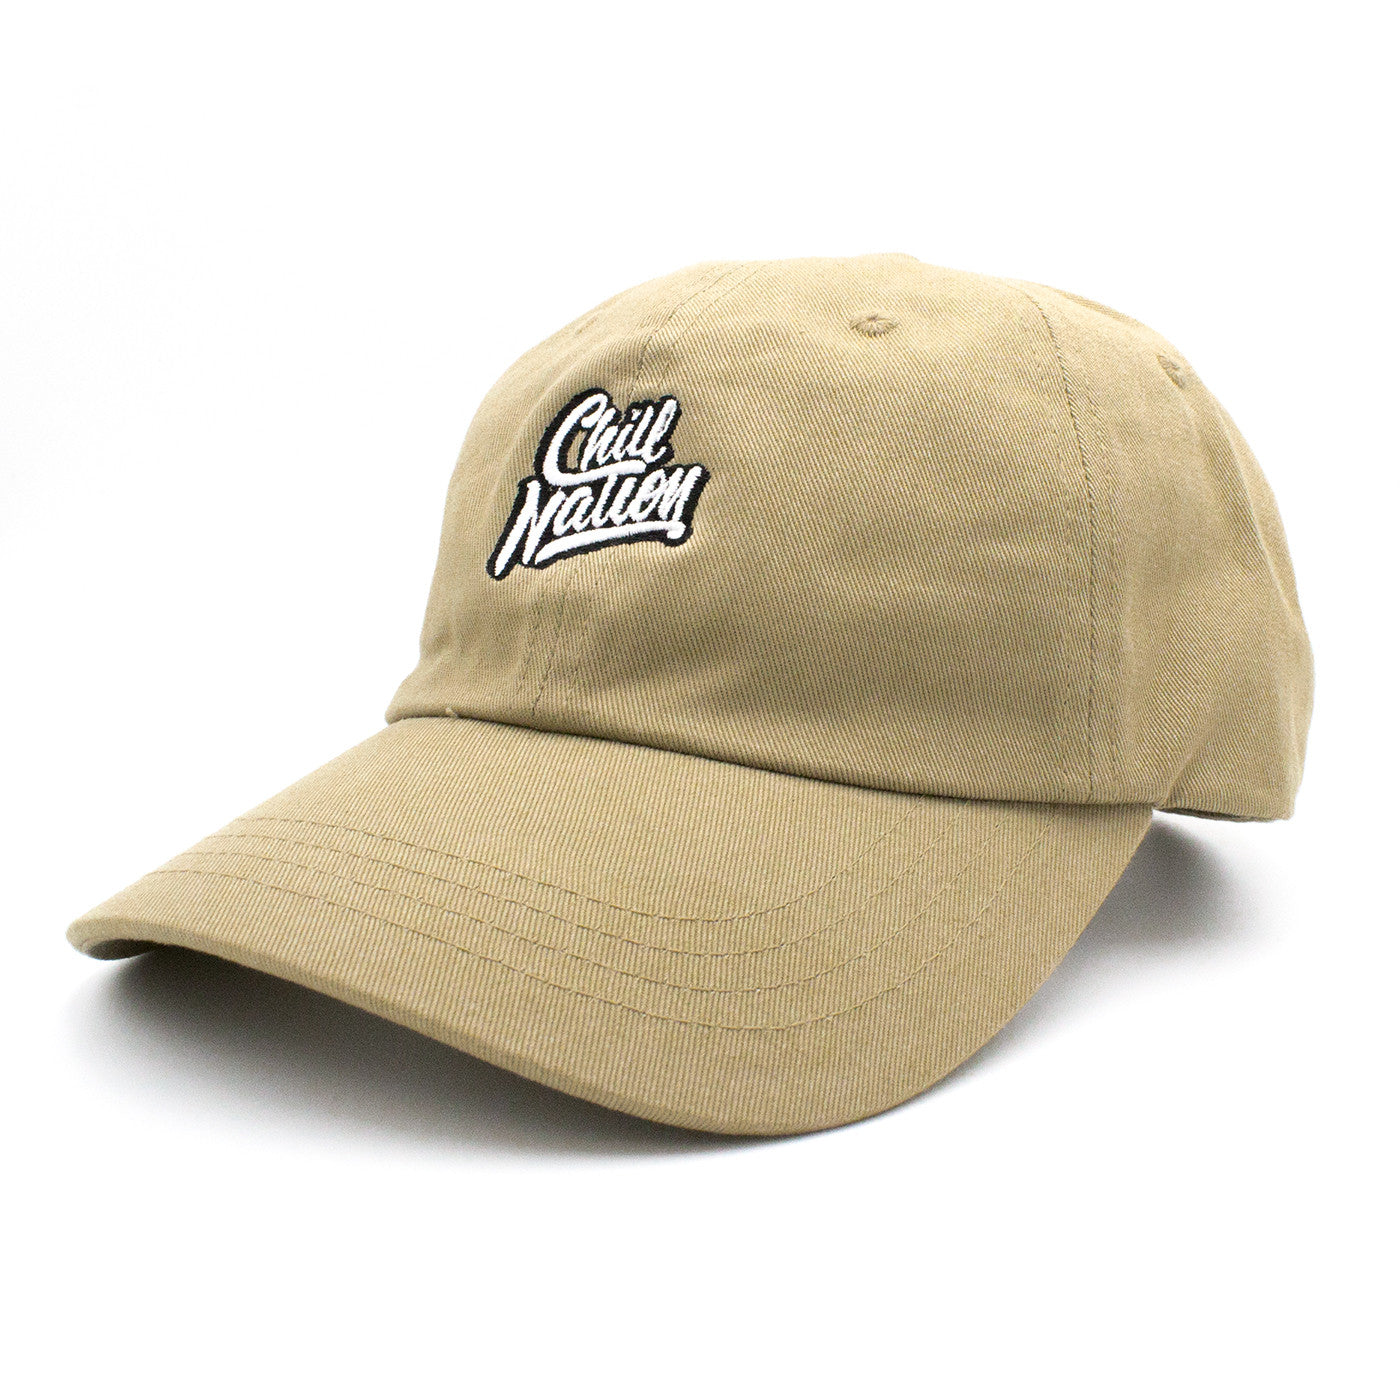 Chill Nation Dad Hat / Khaki